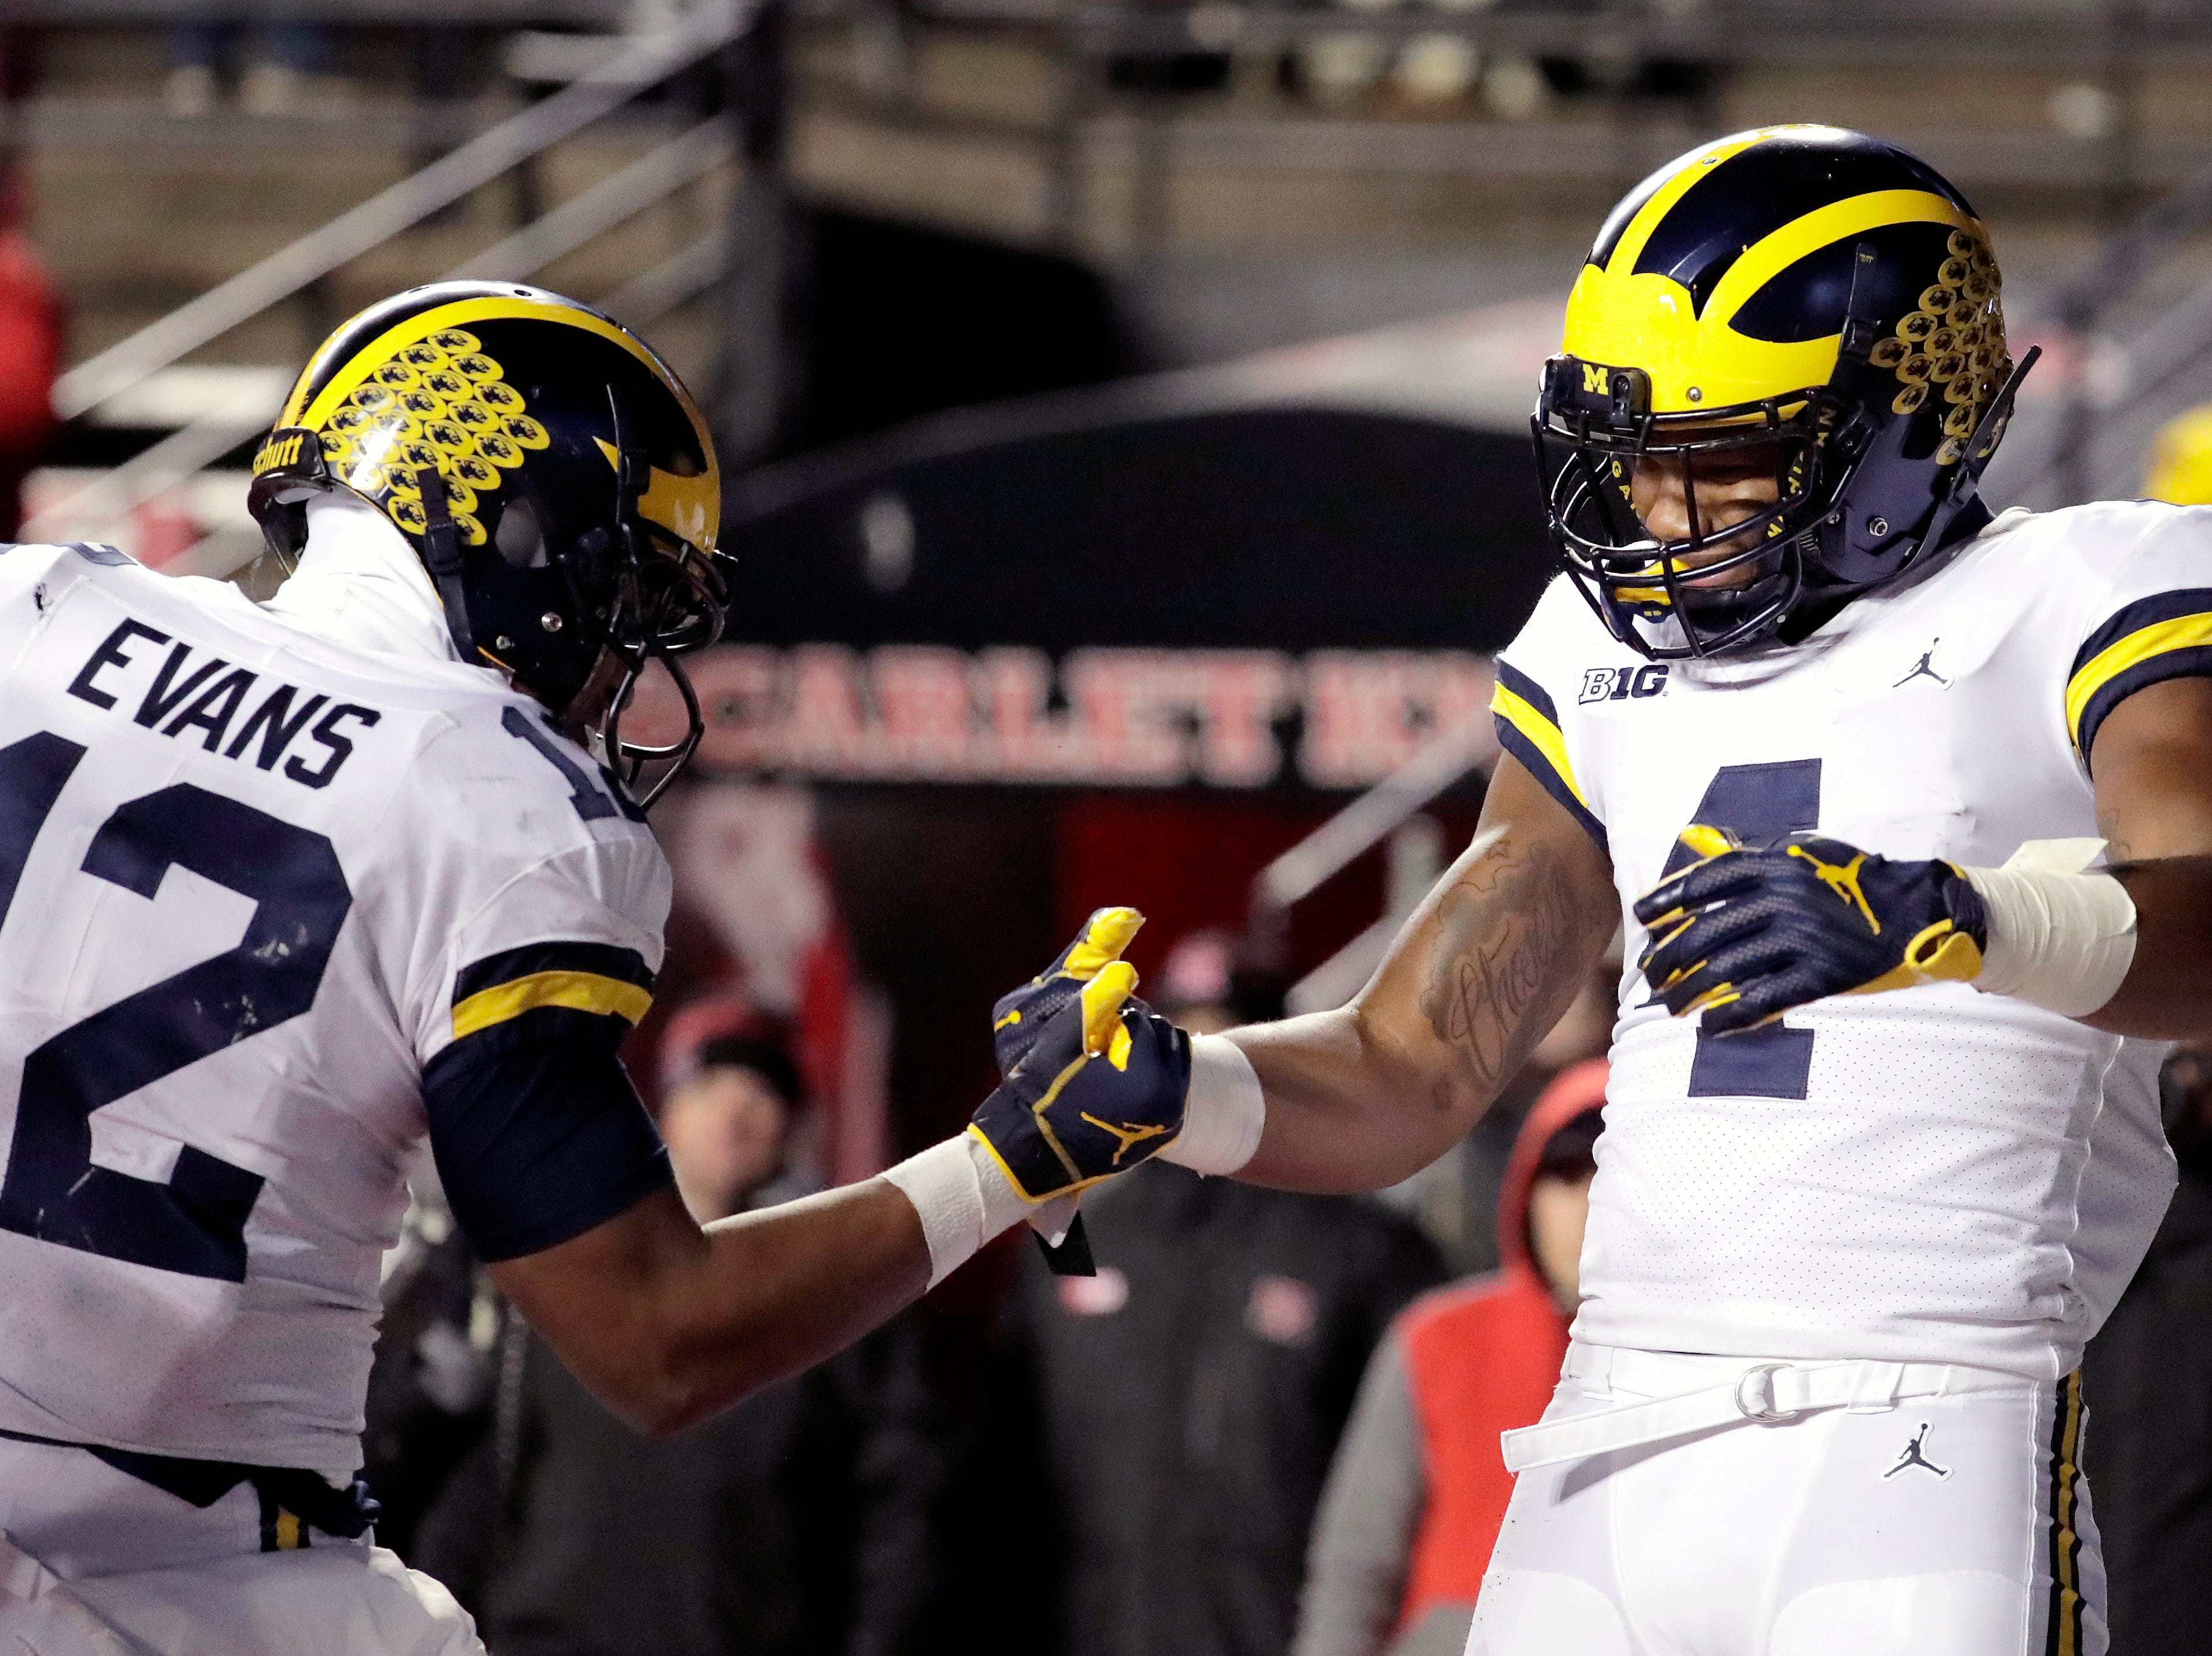 Michigan wide receiver Nico Collins, right, celebrates his touchdown catch with running back Chris Evans.